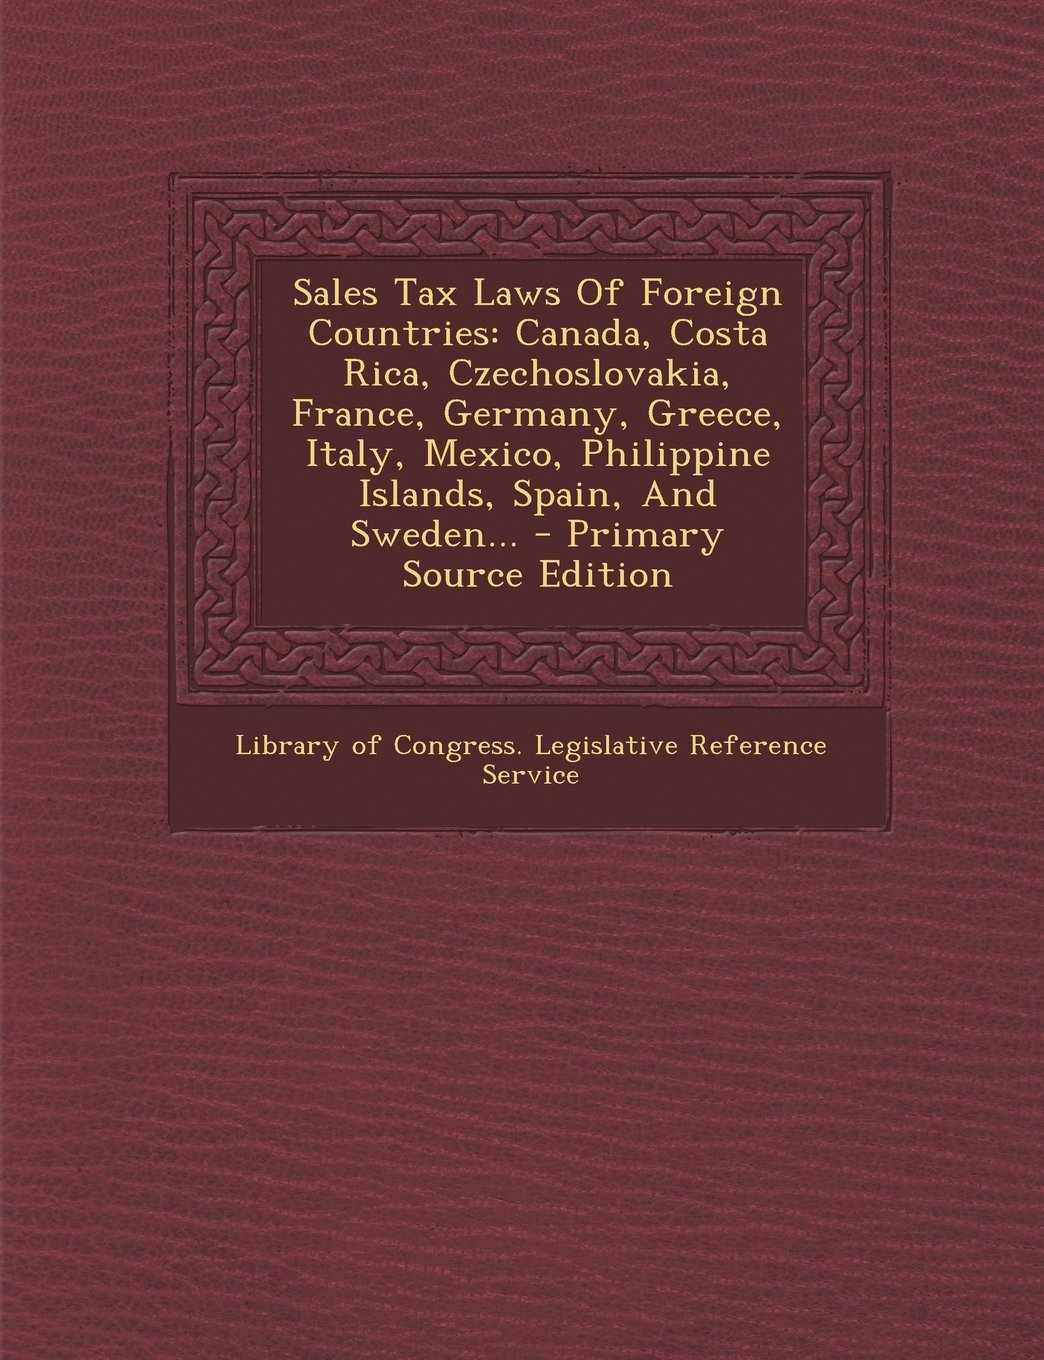 Sales Tax Laws Of Foreign Countries: Canada, Costa Rica, Czechoslovakia, France, Germany, Greece, Italy, Mexico, Philippine Islands, Spain, And Sweden... - Primary Source Edition